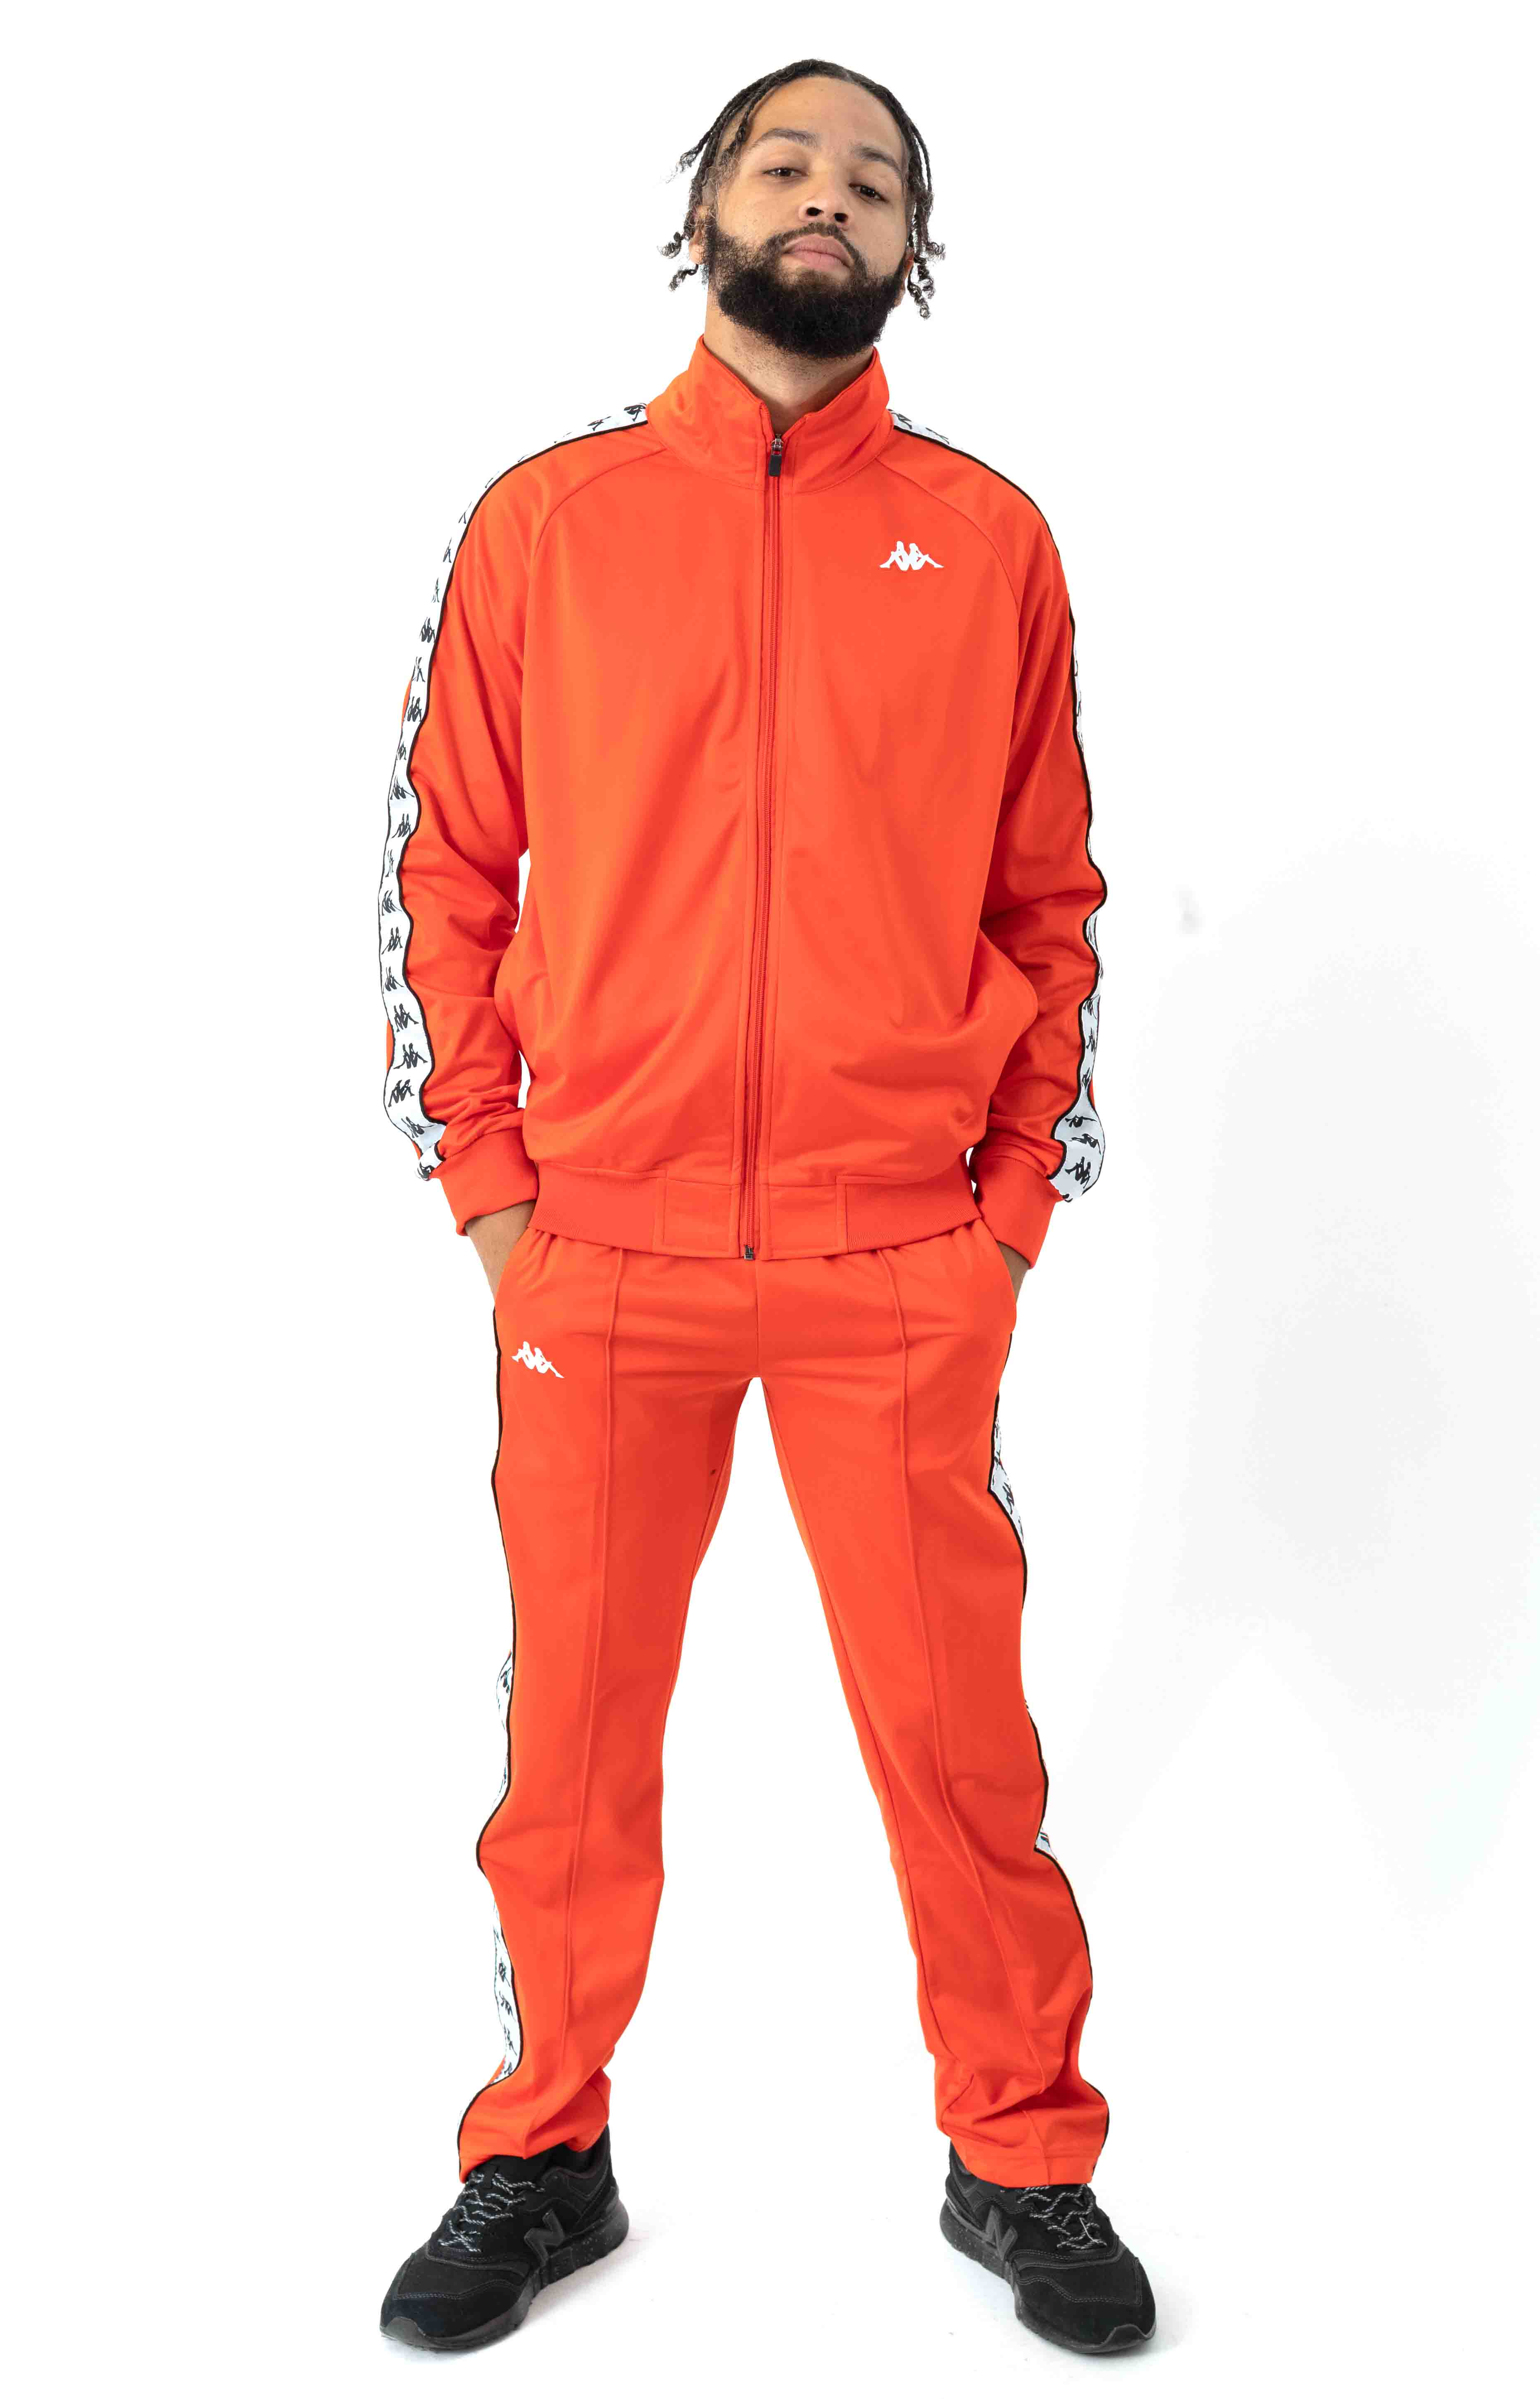 222 Banda Anniston Track Jacket - Orange Flame/White  4